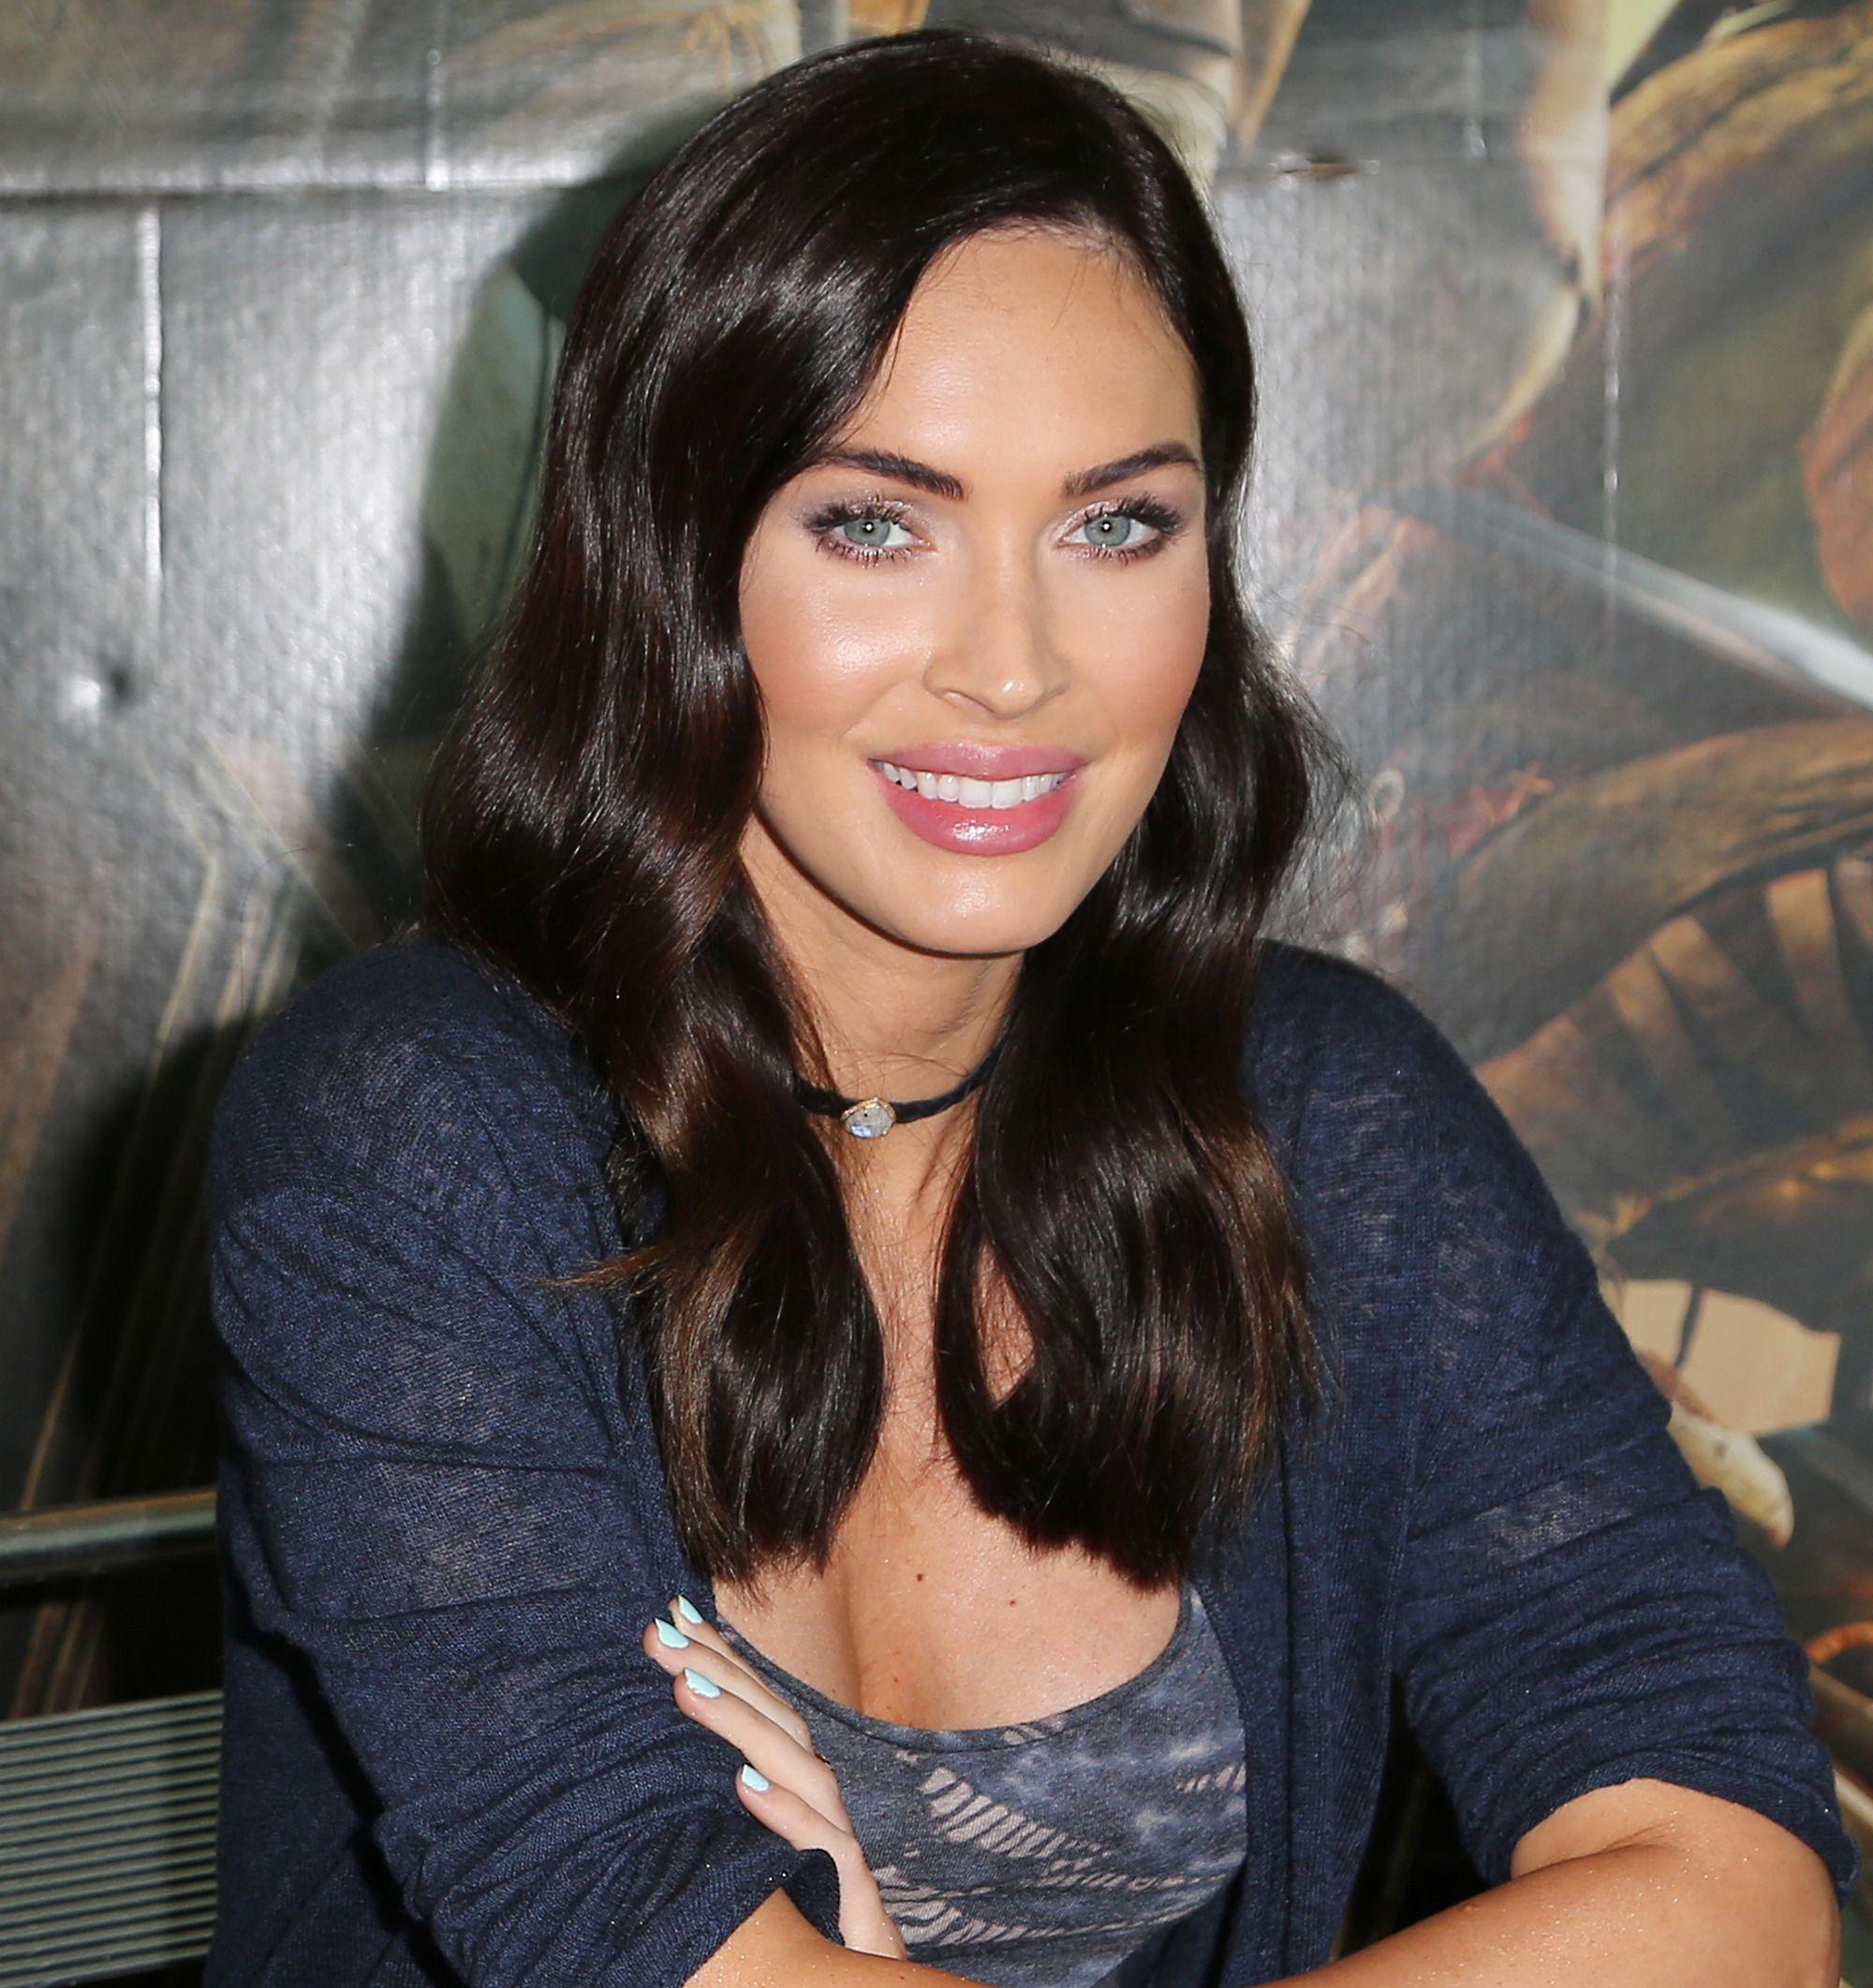 megan fox spearheads alternative history series for travel channel